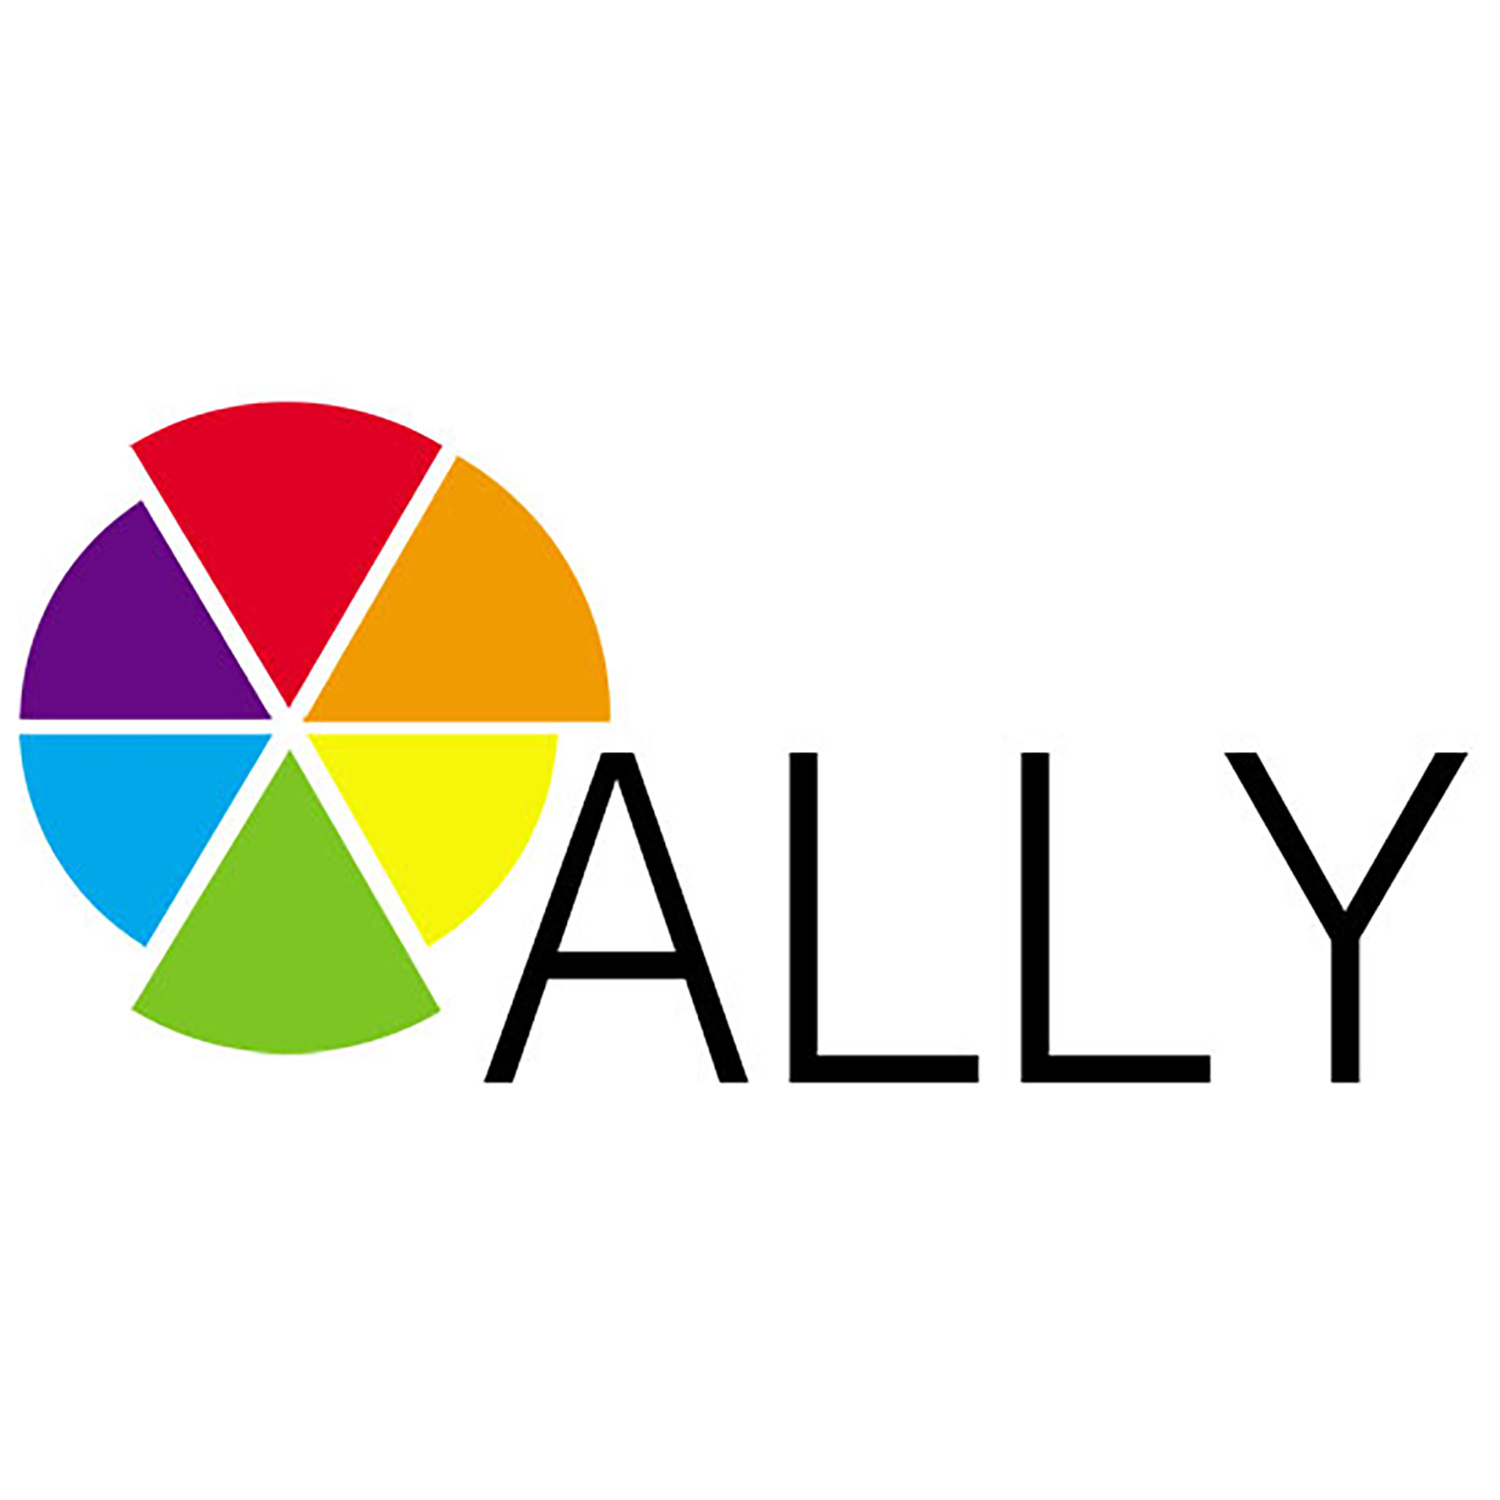 ALLY background